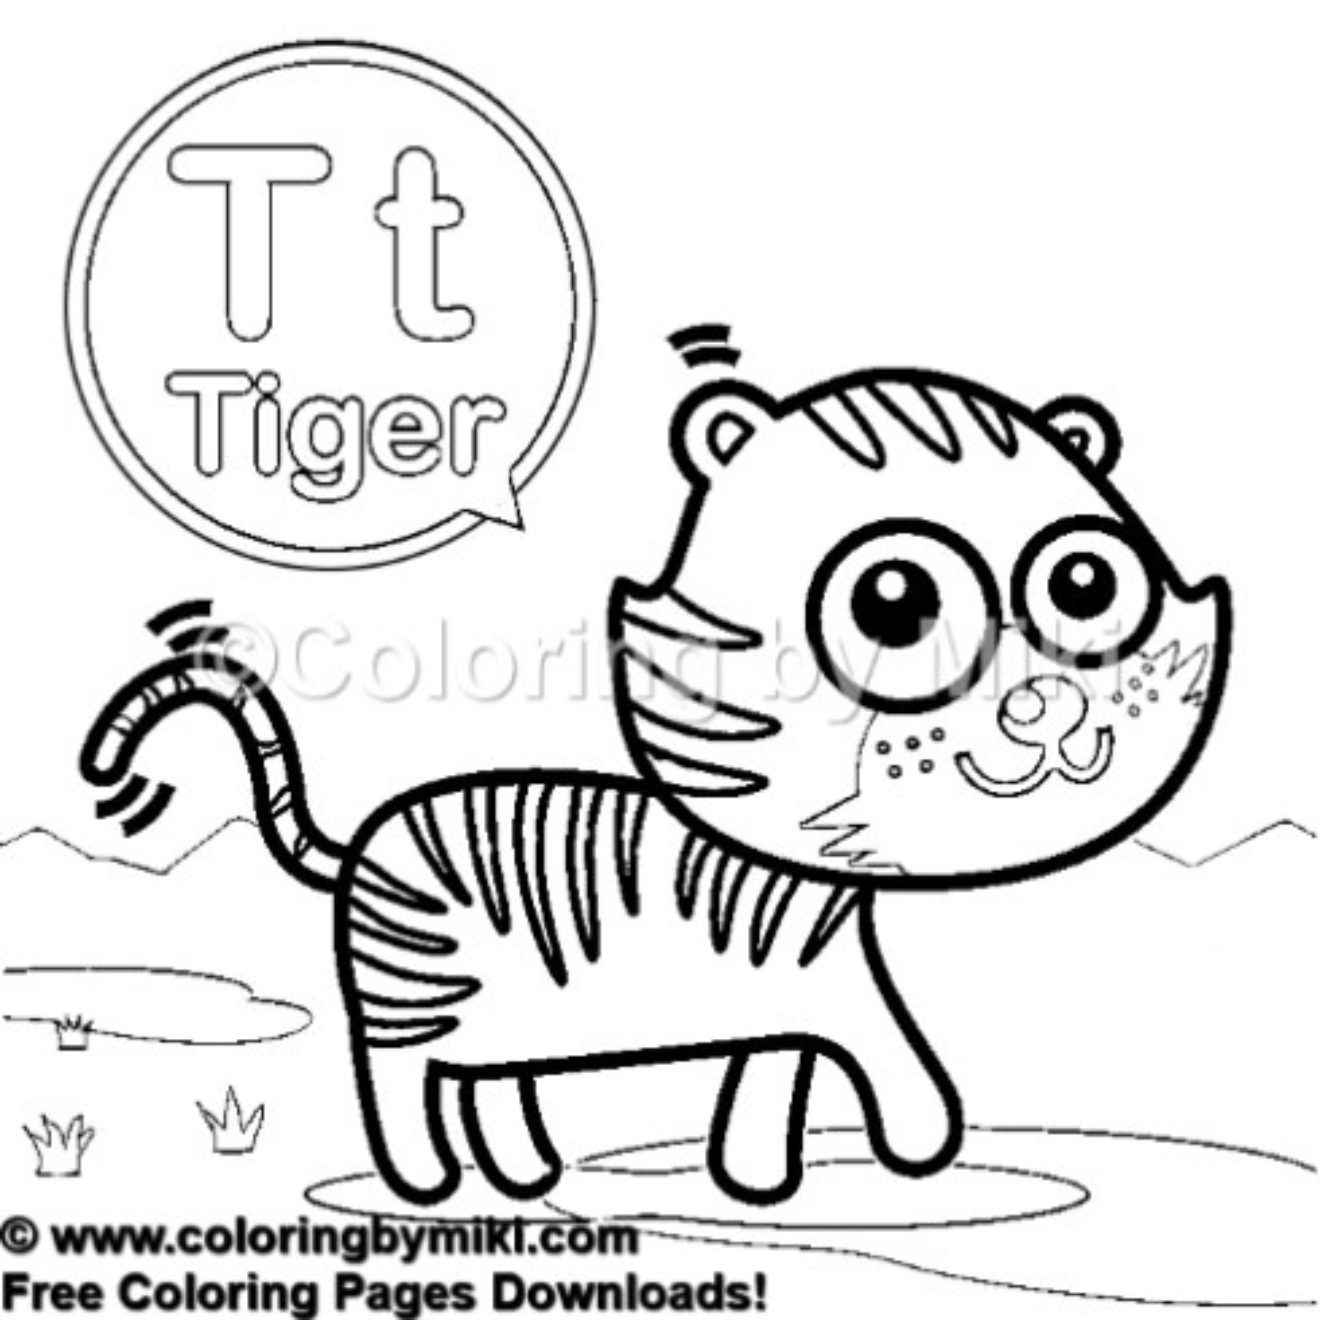 Pin On Coloring Pages For Kids Free Printable